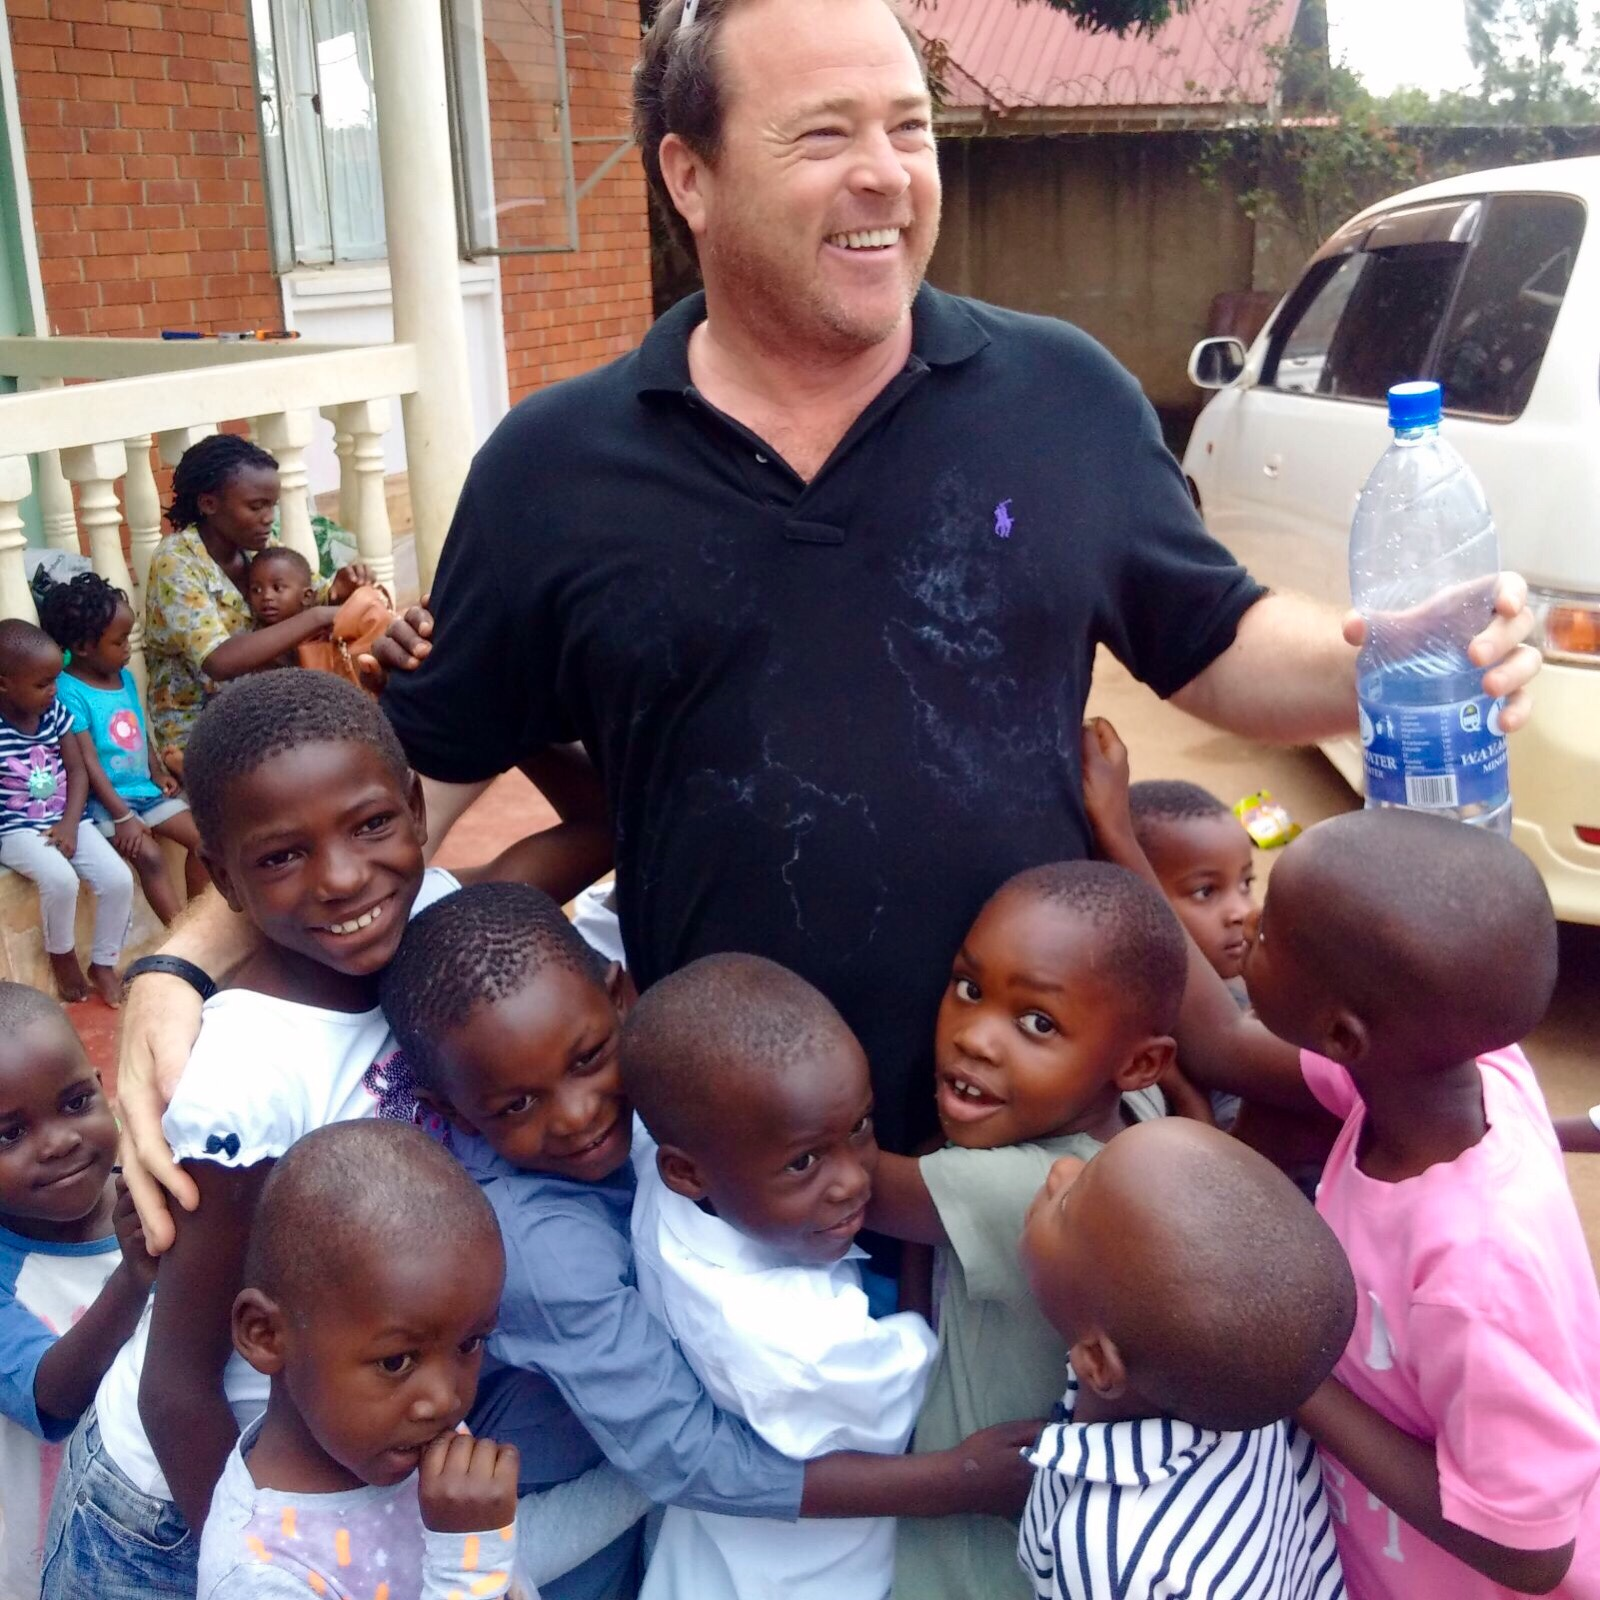 russel-chances-for-children-charity-founder